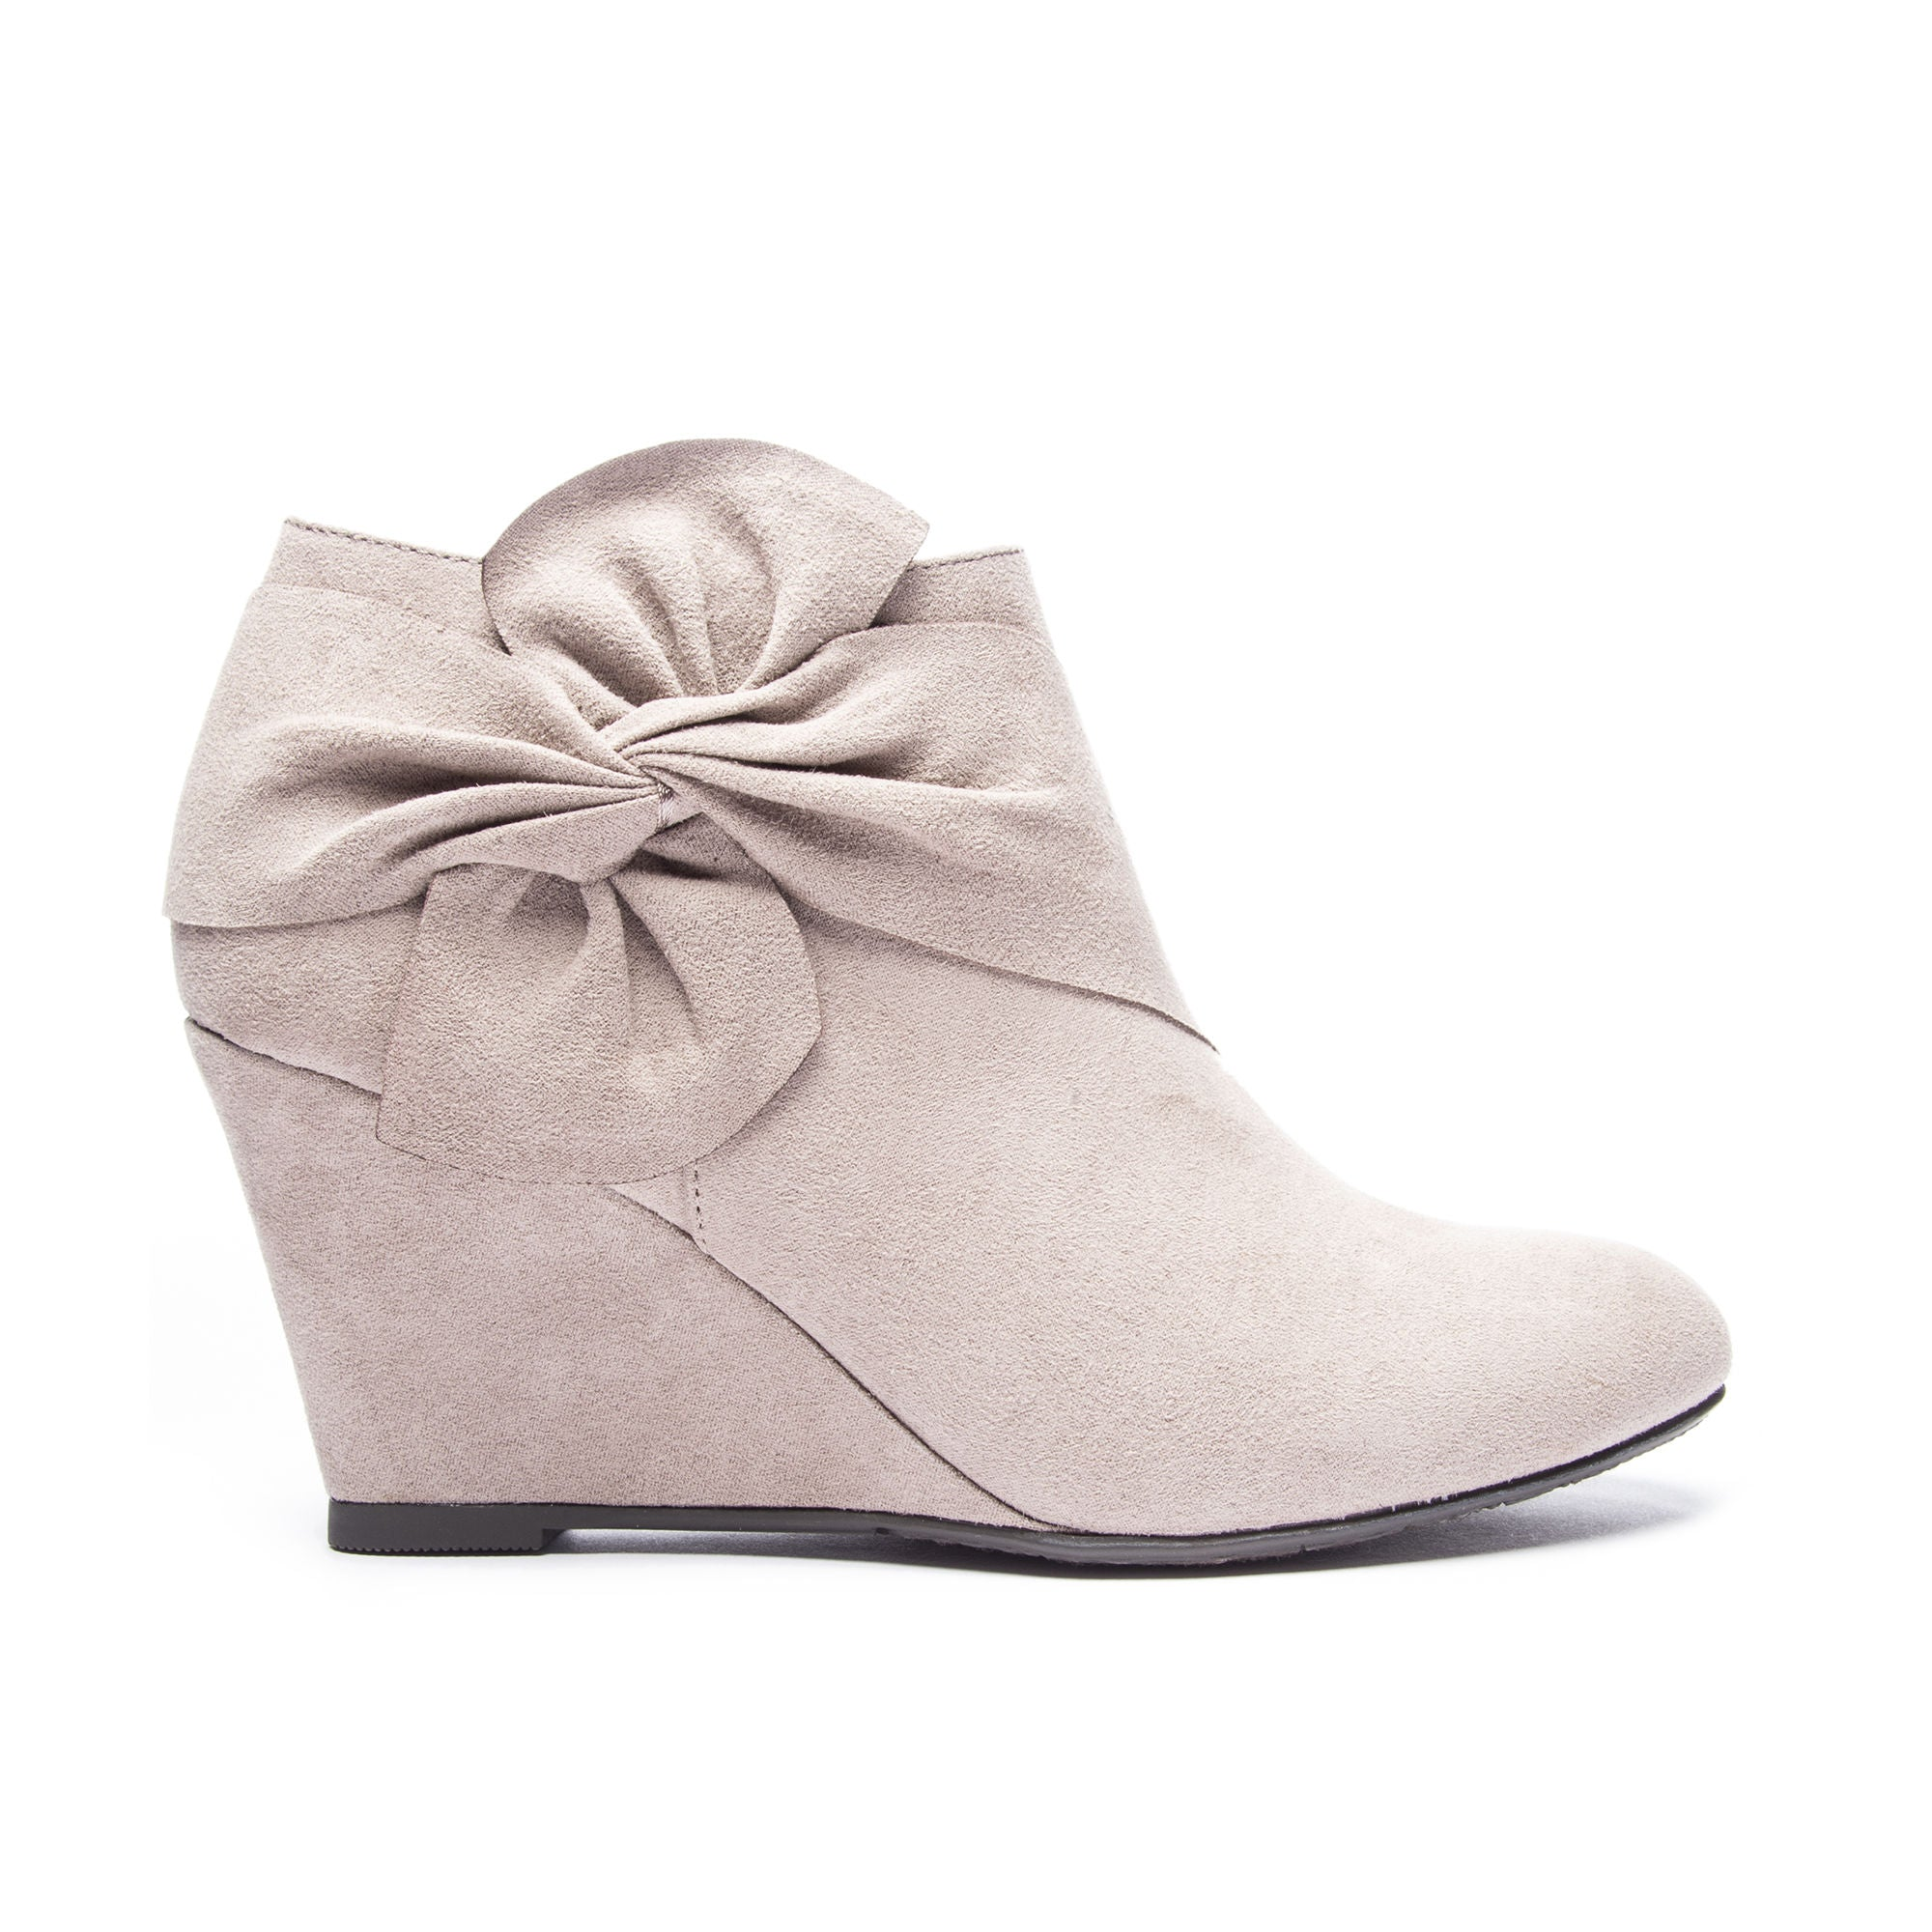 7efc3dbf43b2 Chinese Laundry Vivid Wedge Bootie - Taupe - Eleven Oaks Boutique